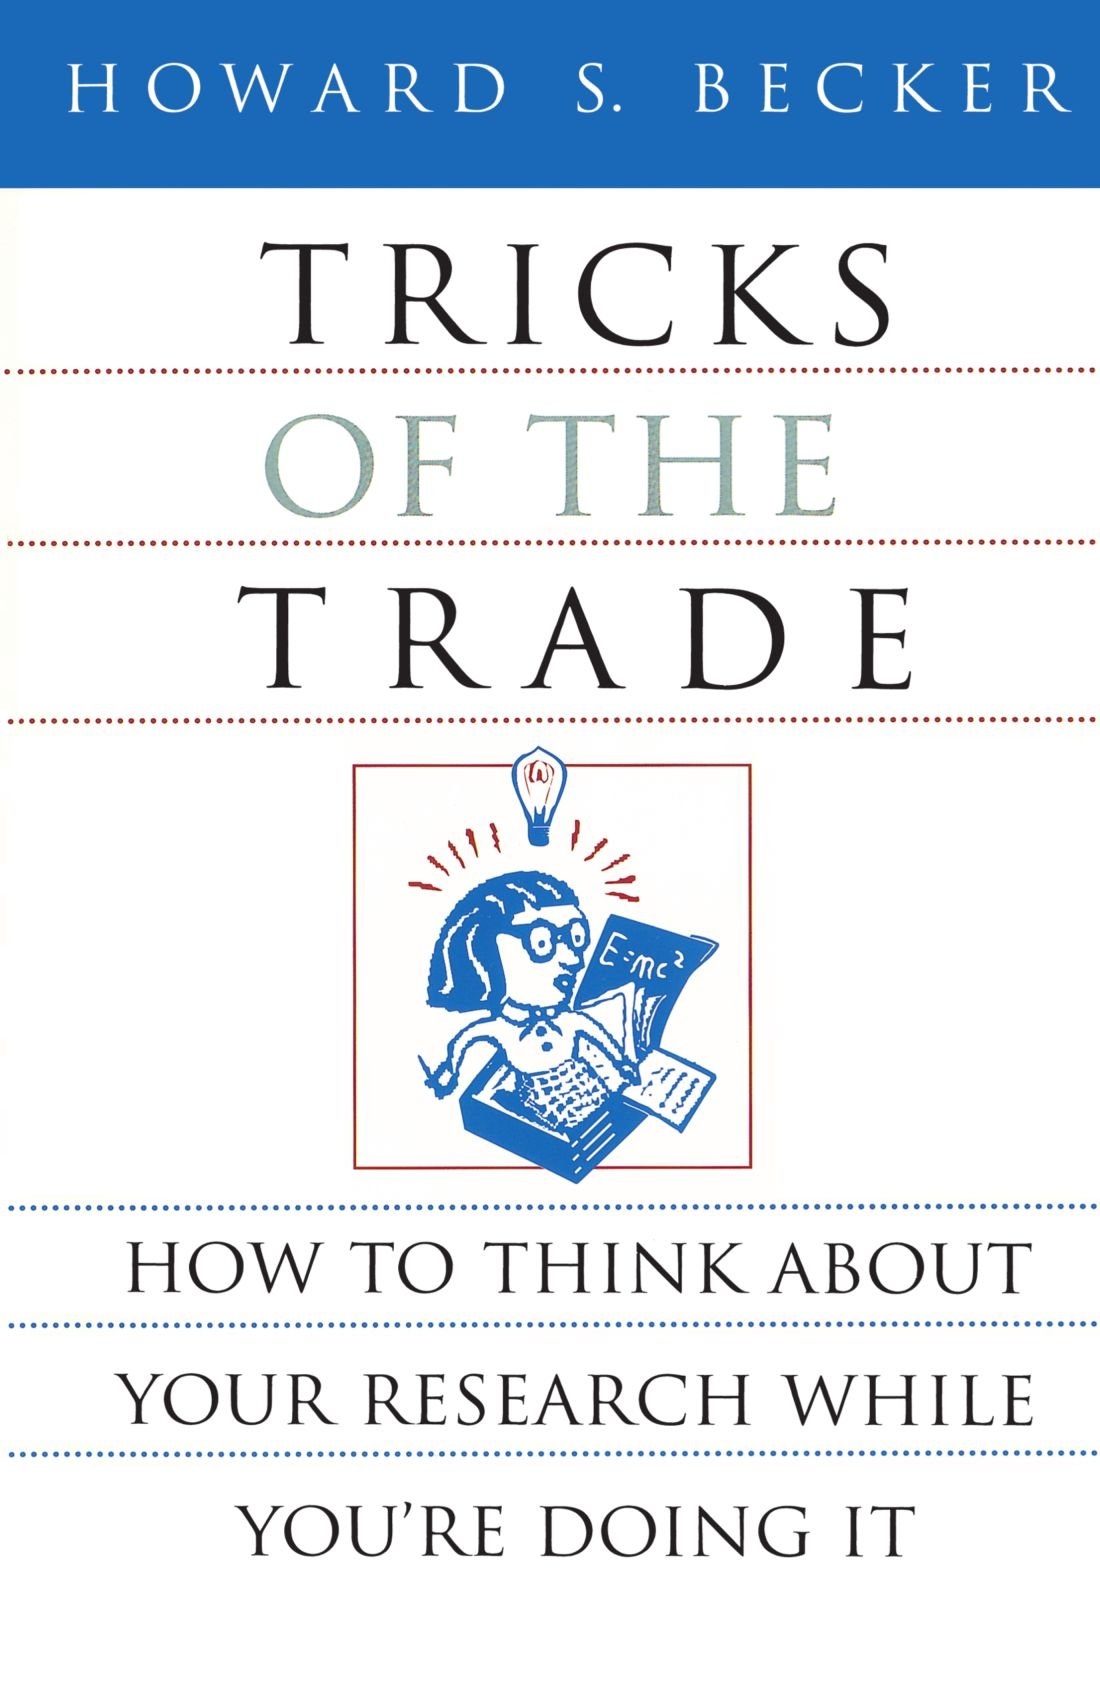 Tricks of the Trade: How to Think about Your Research While You're Doing It  (Chicago Guides to Writing, Editing, and Publishing) Paperback – 19 Jan 1998